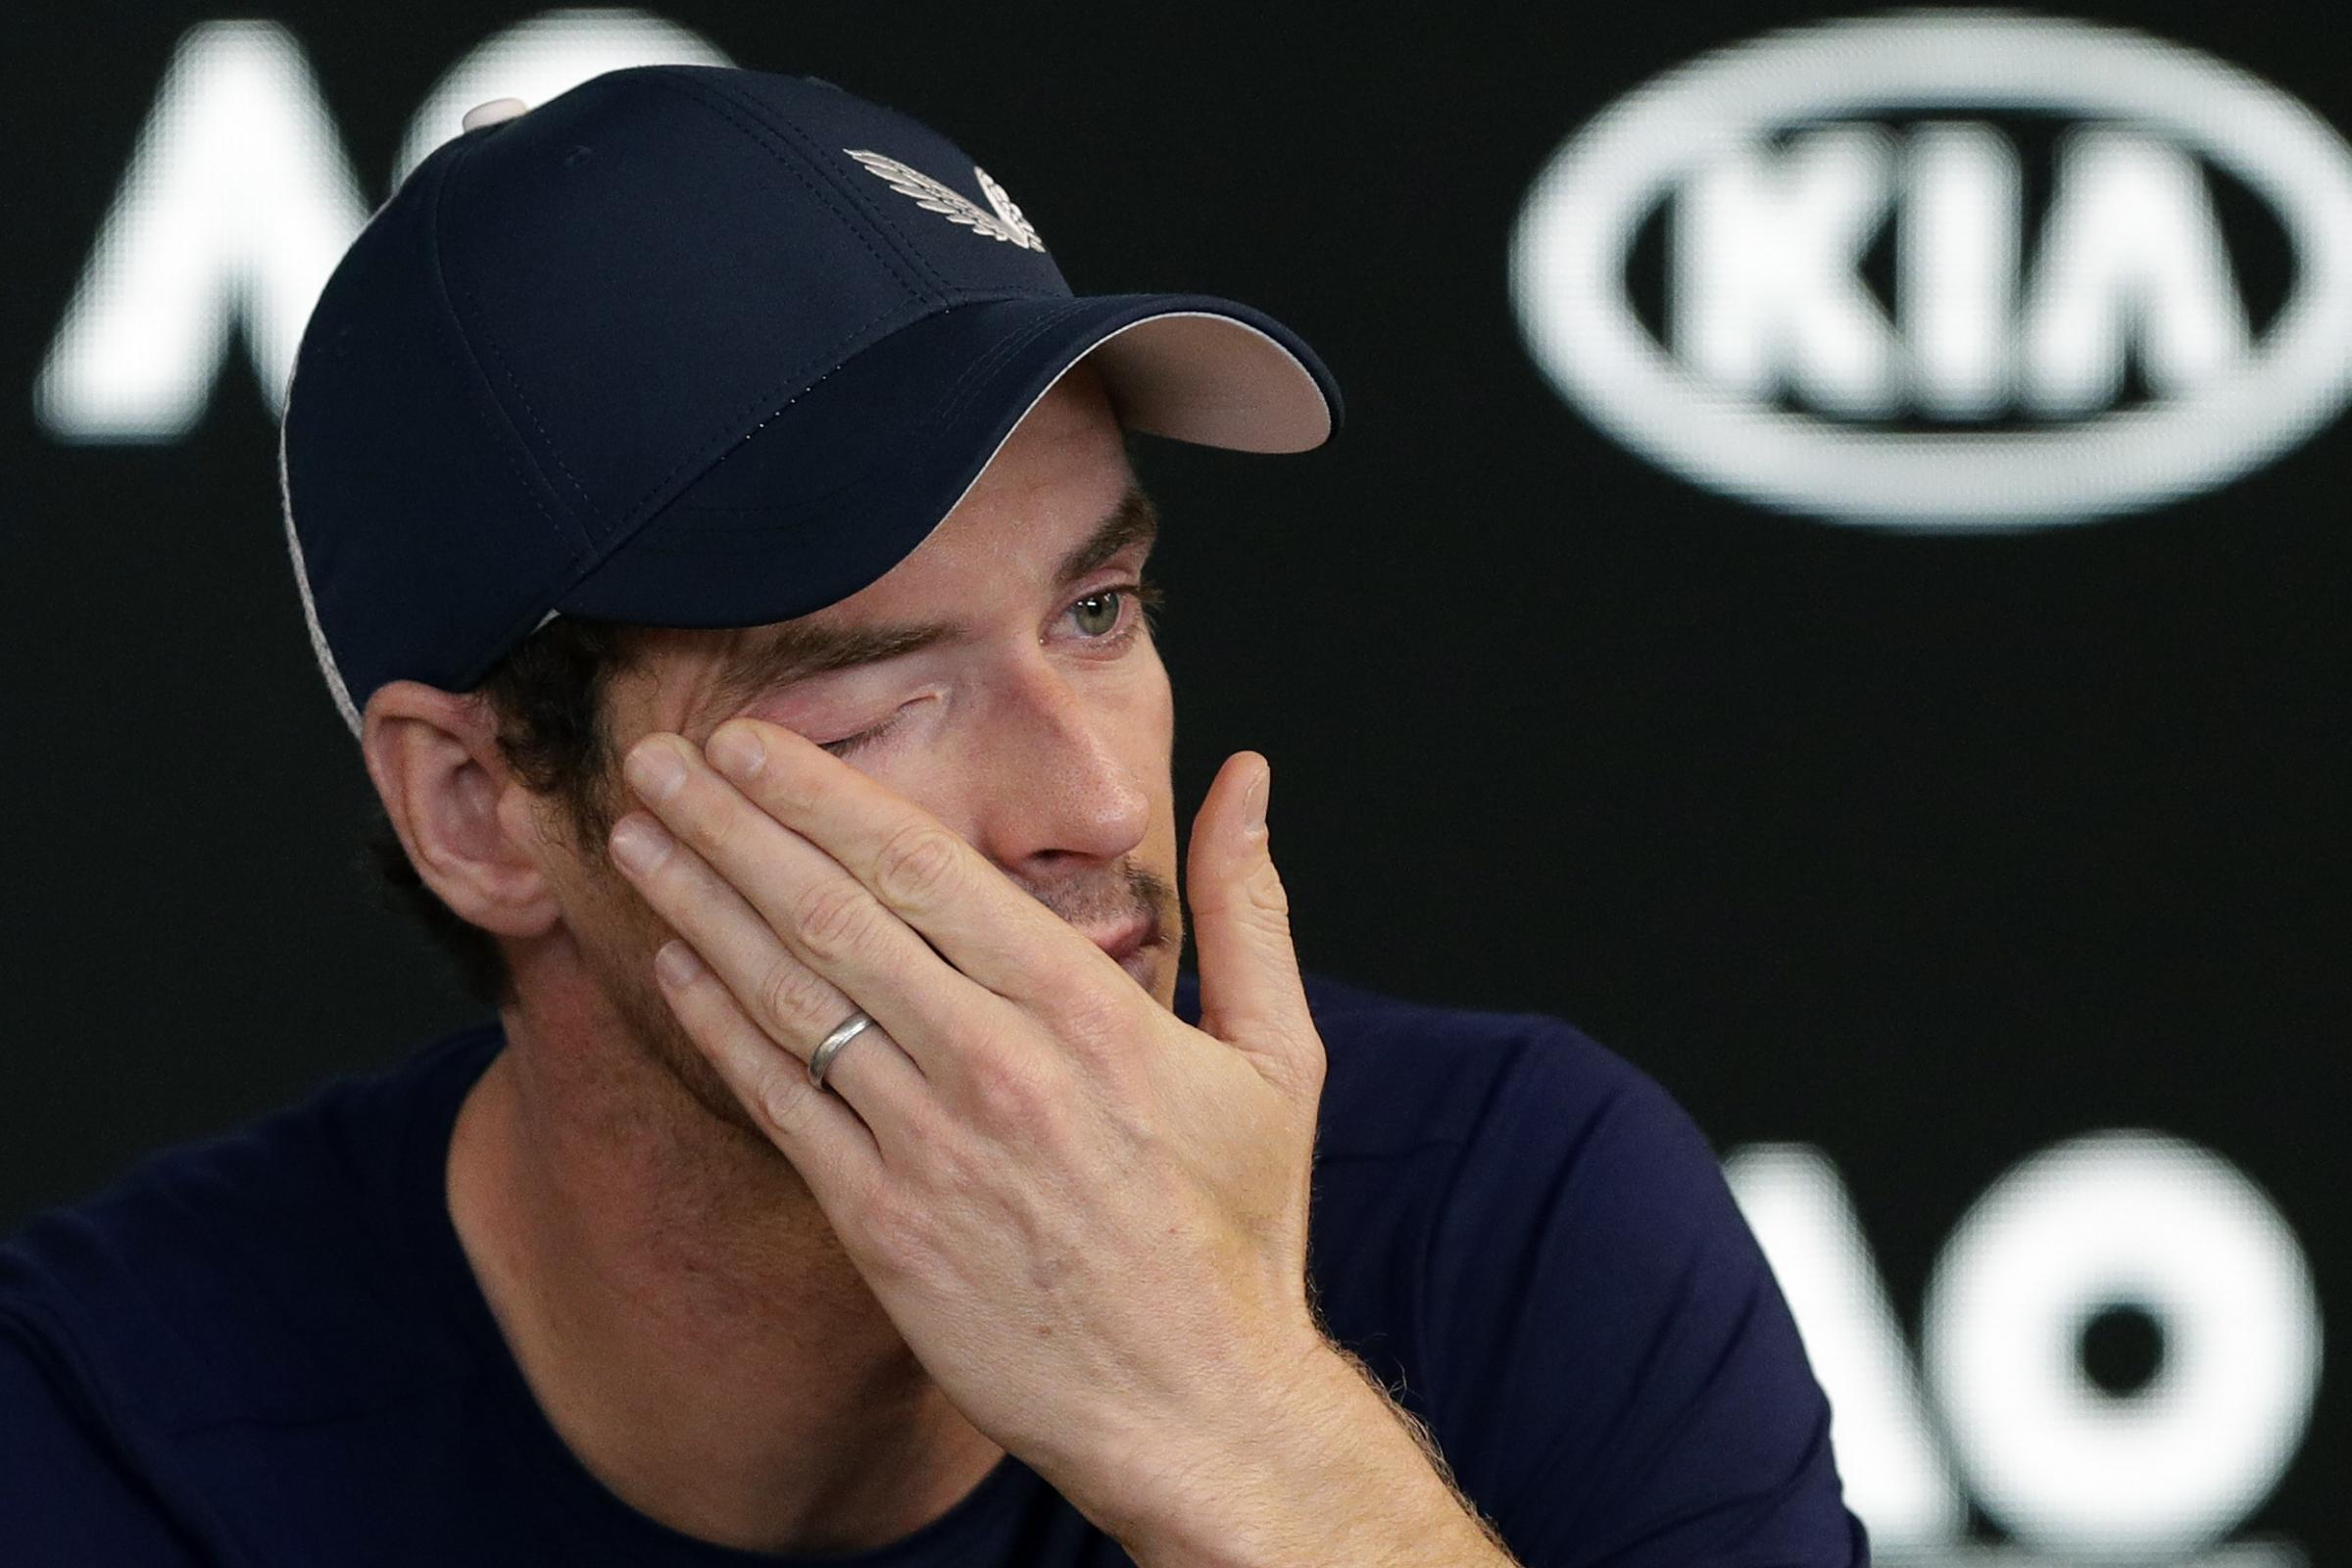 A tearful Andy Murray revealed plans to retire from tennis in the next few months